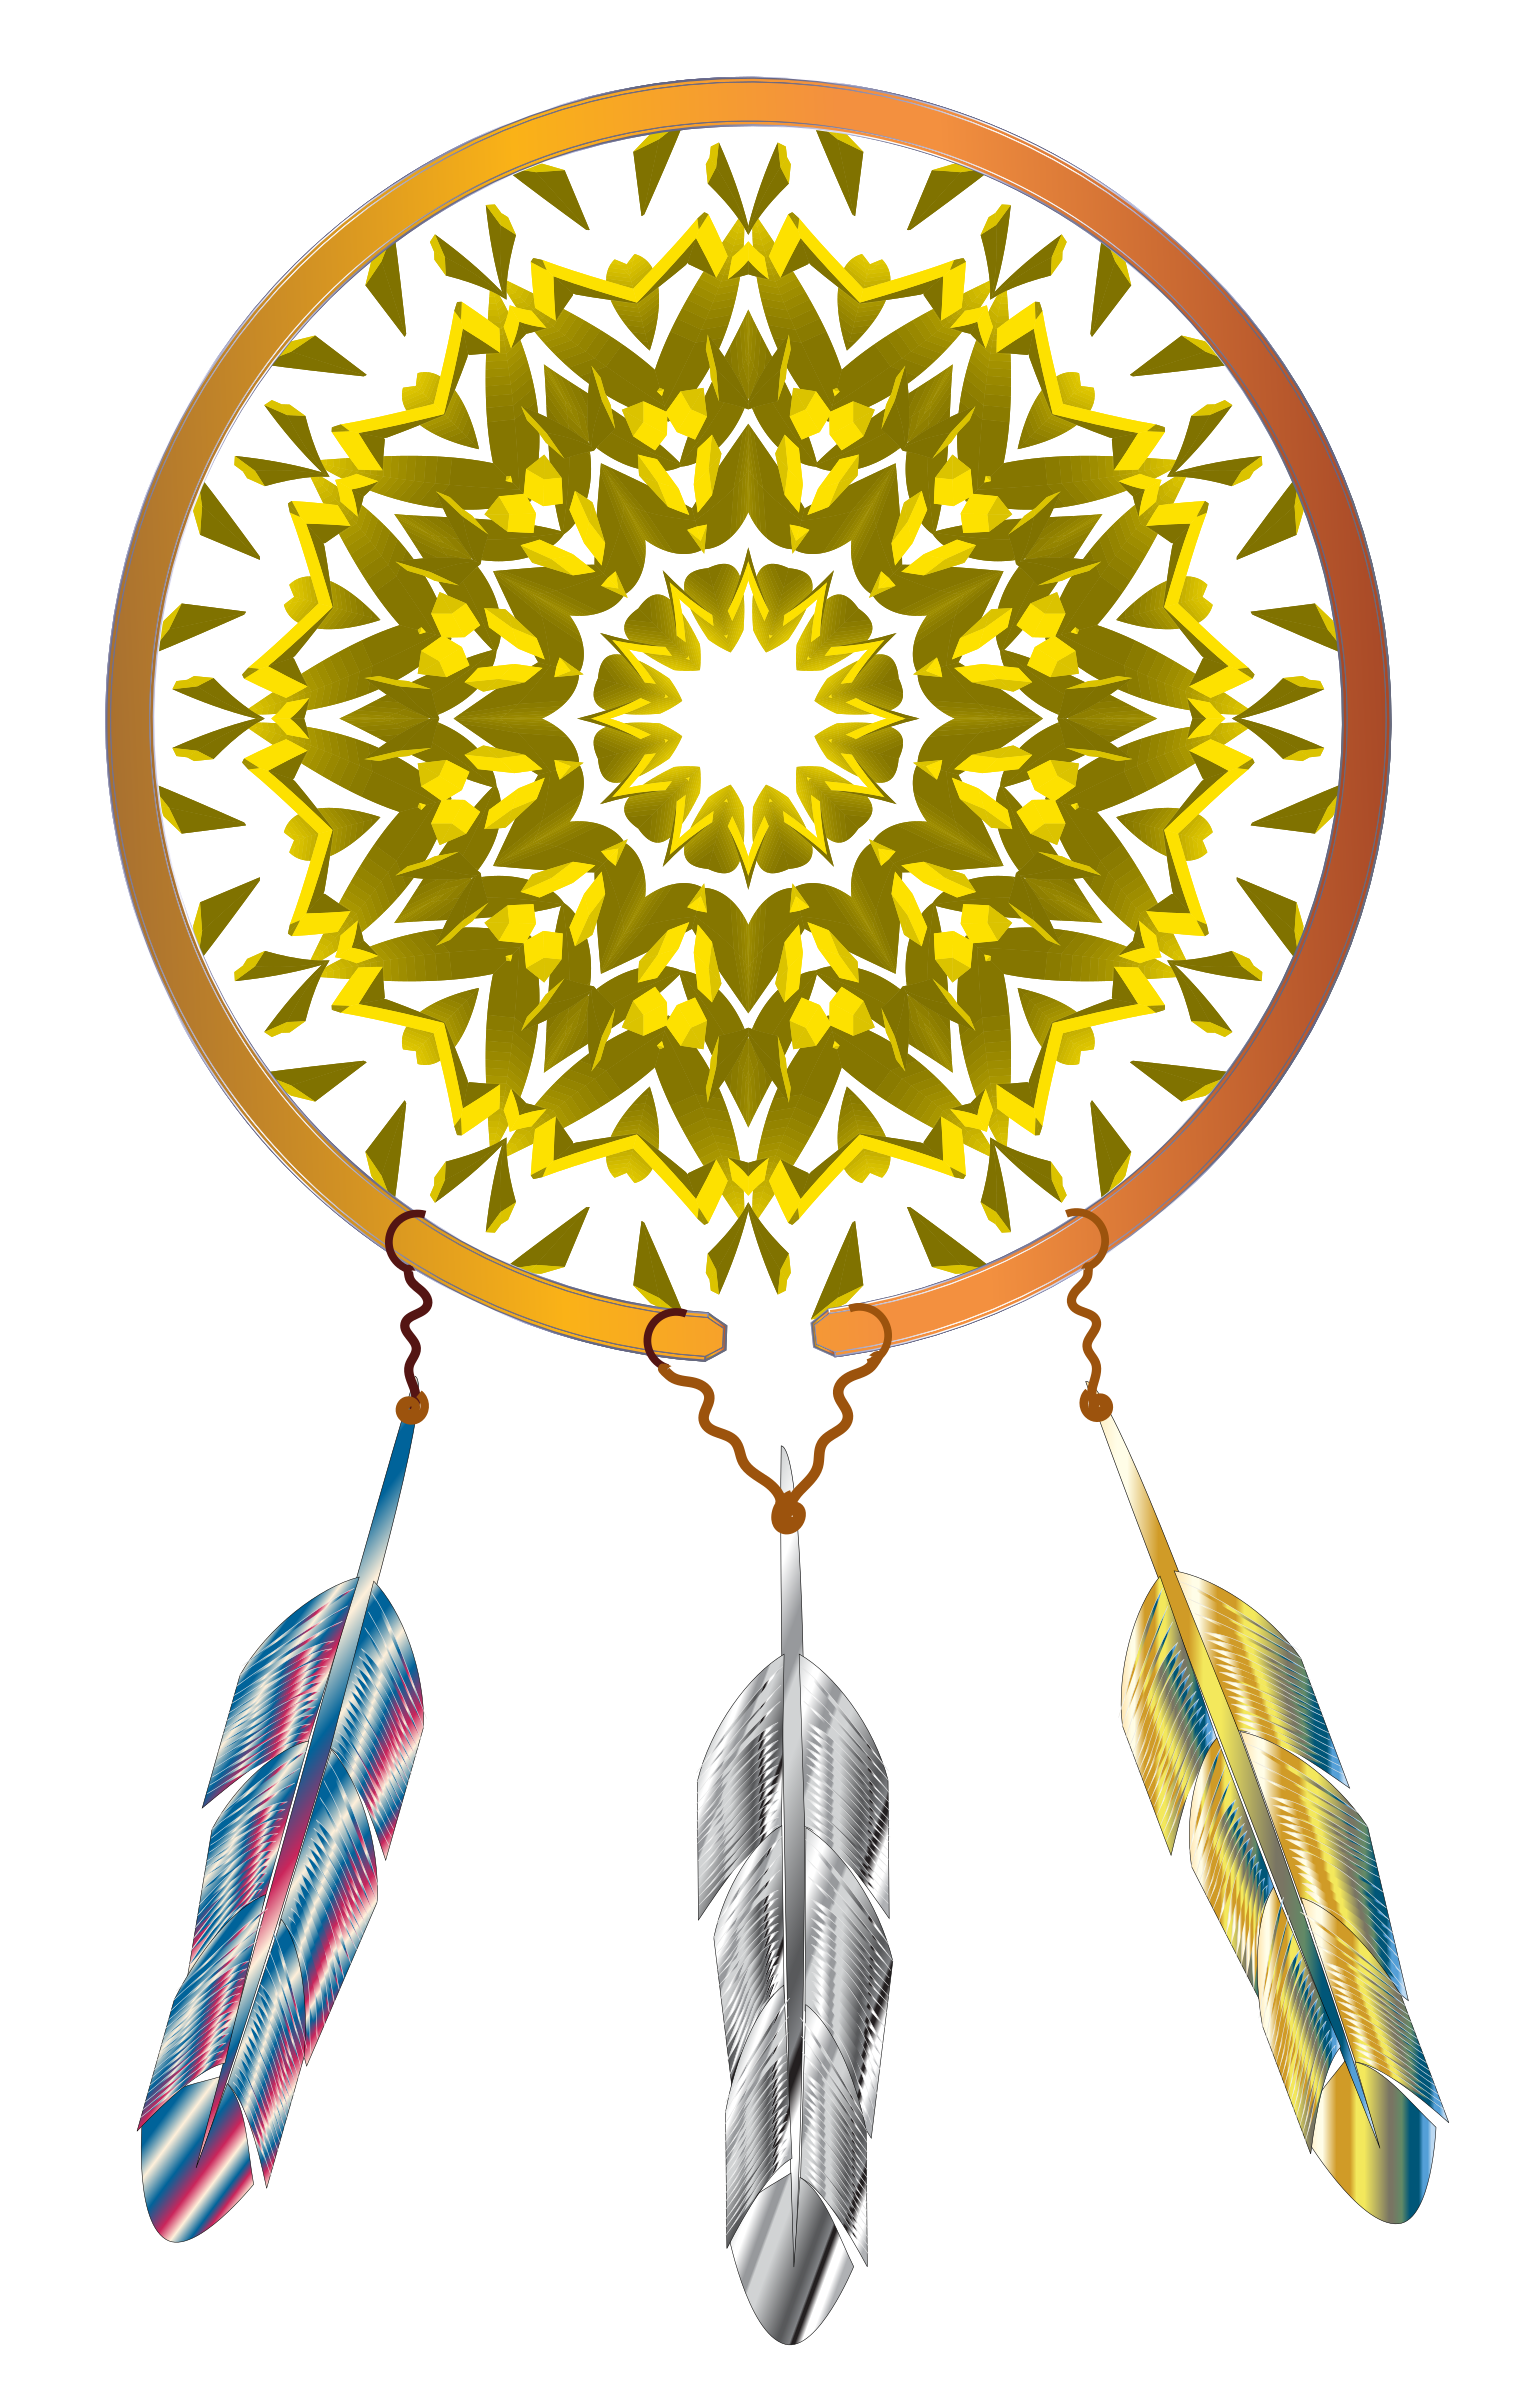 Dreamcatcher Daily Sketch by GDJ